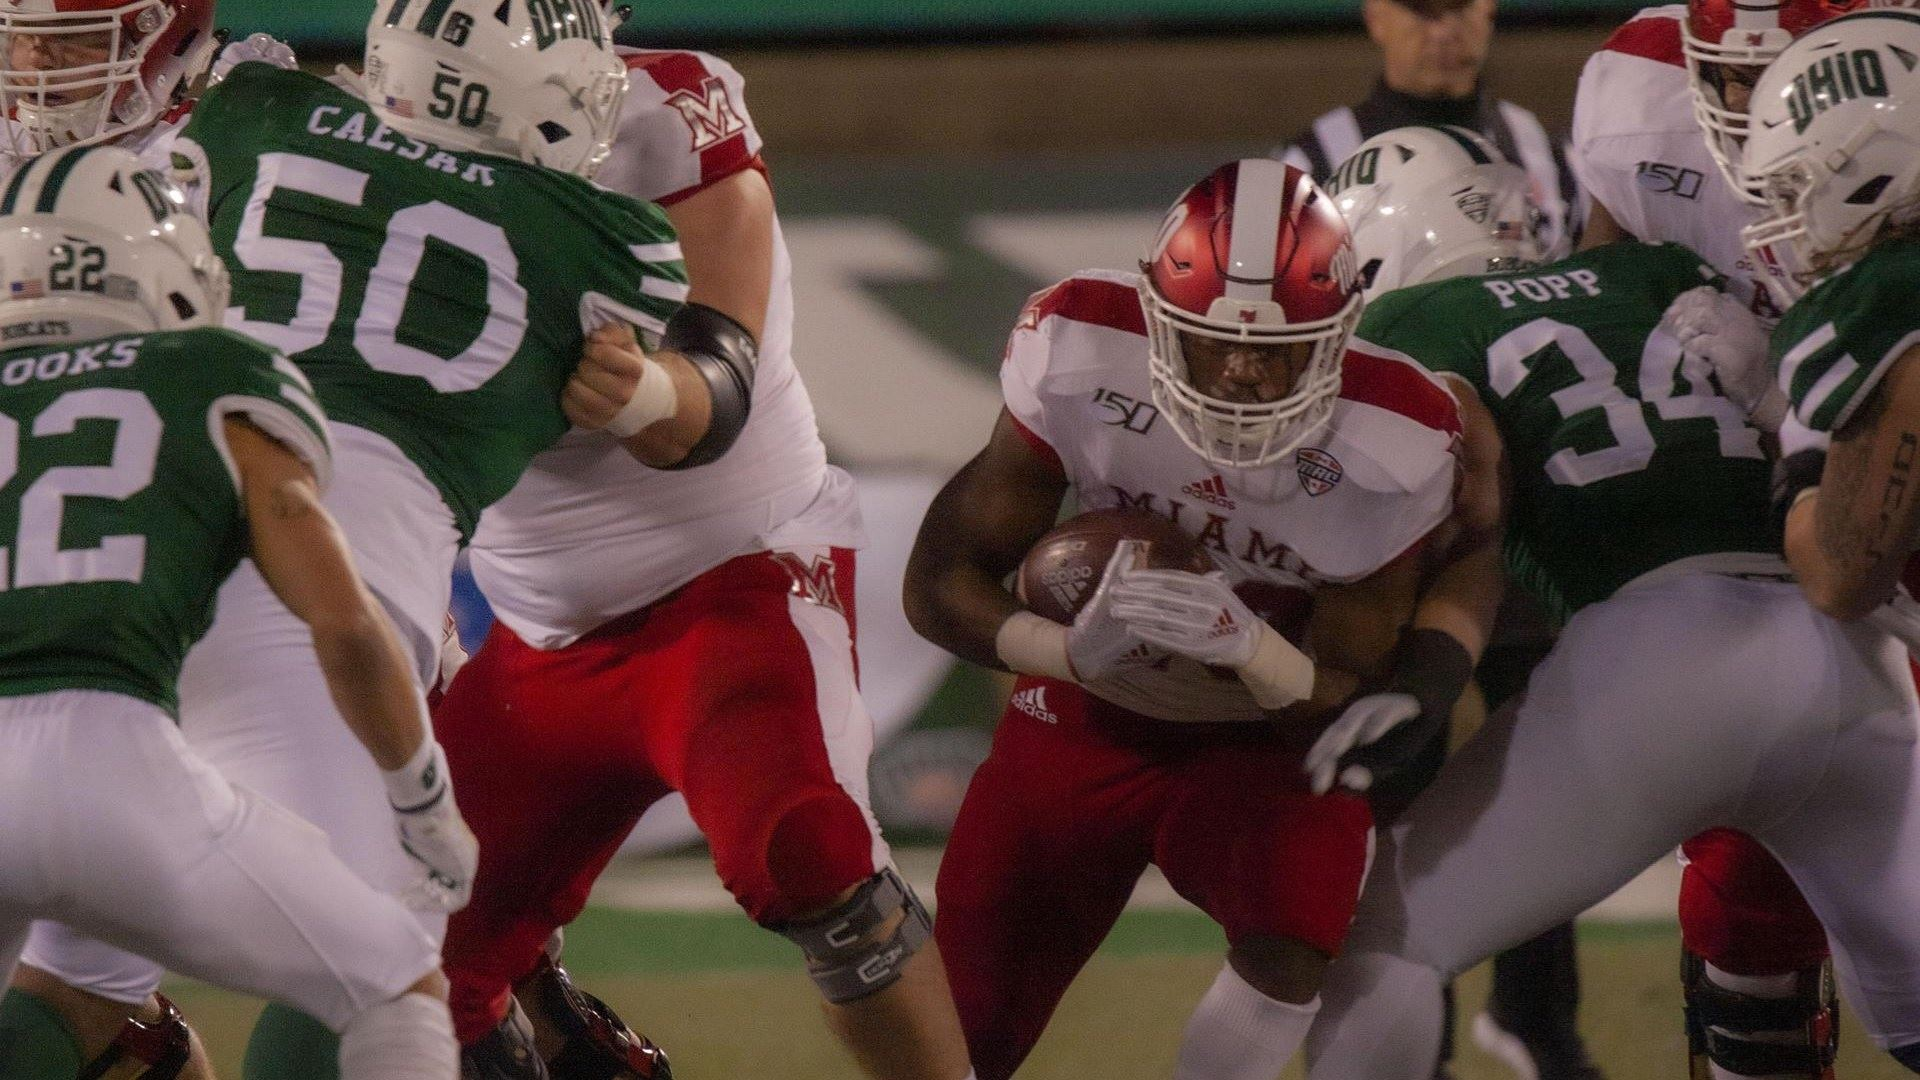 Miami (Ohio) RedHawks running back Jaylon Bester carries the ball against the Ohio Bobcats